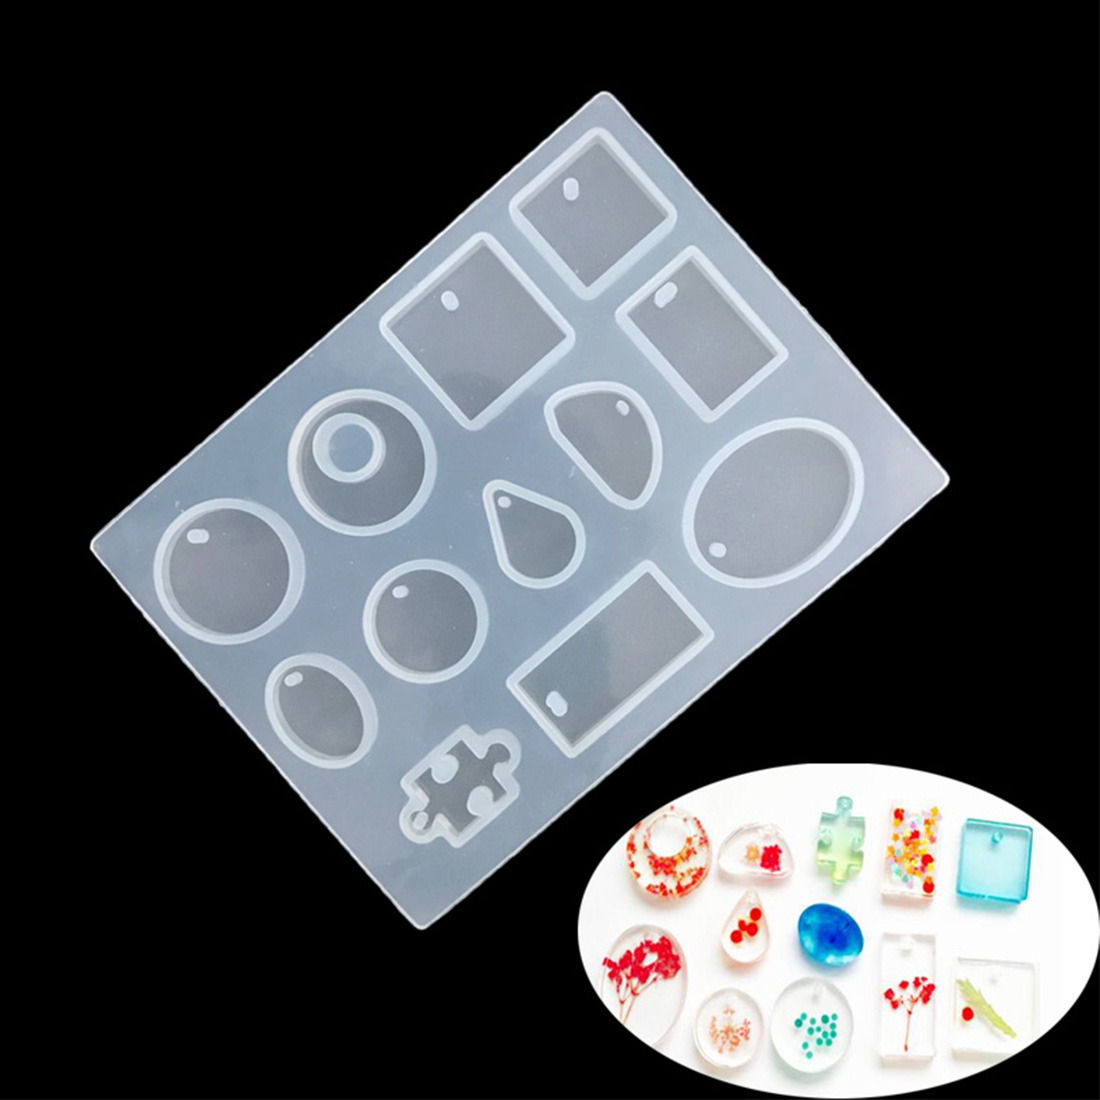 NEW Waterdrop Silicone Mould DIY For Resin Casting Jewelry Pendant Mold Fondant Cake Decorating Tool Gumpaste Mold